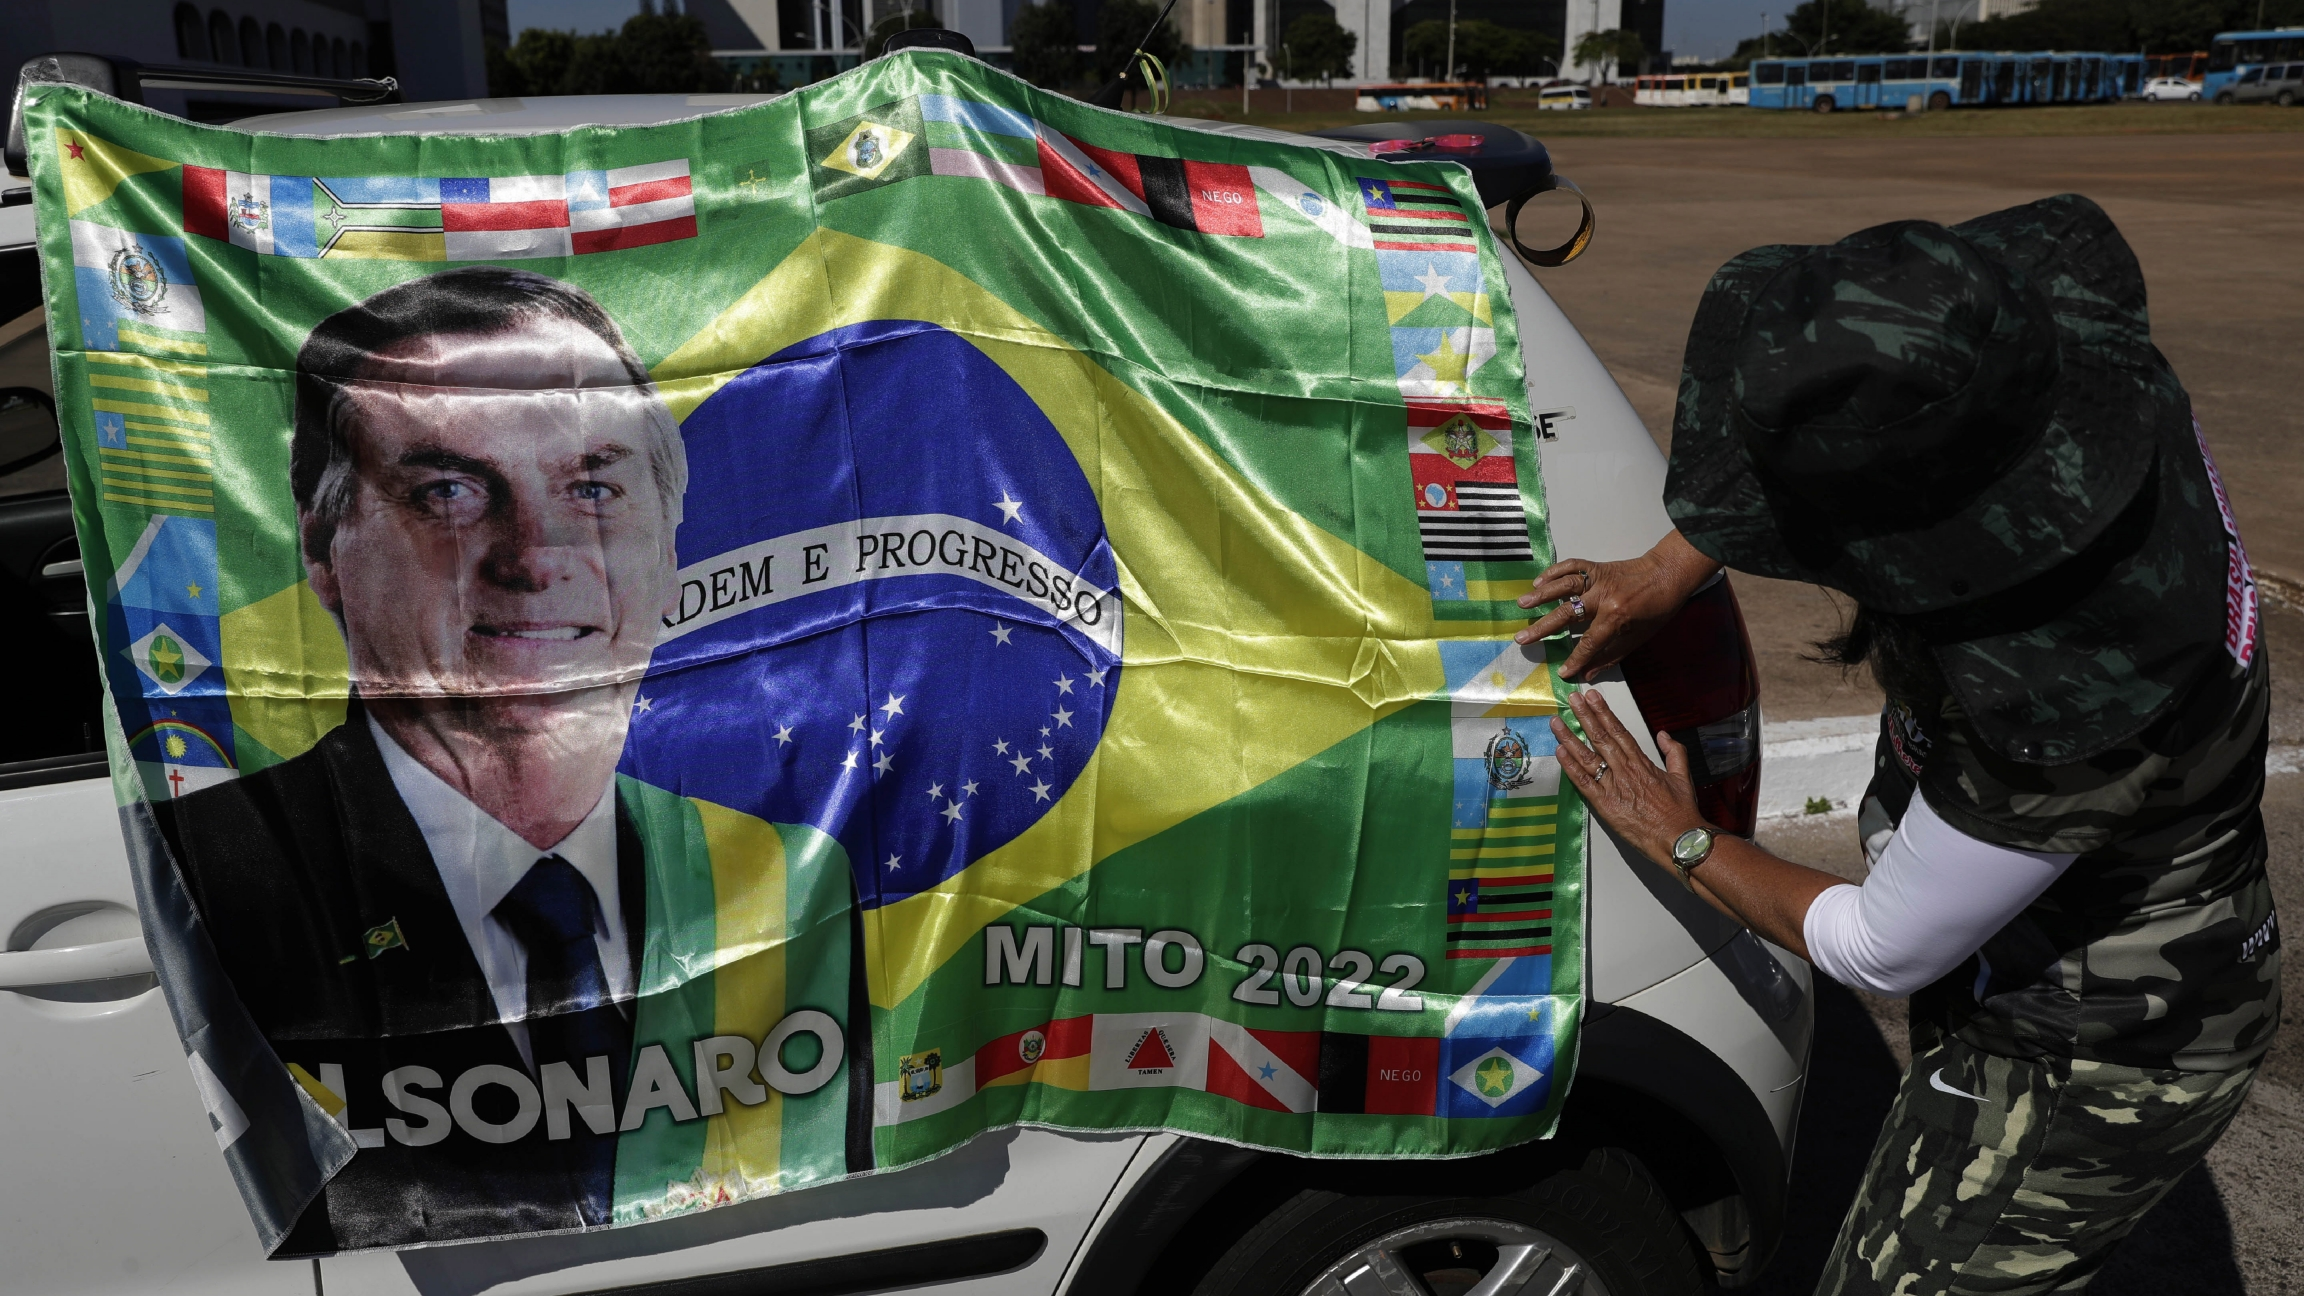 A supporter of Brazilian President Jair Bolsonaro places his image on a car.